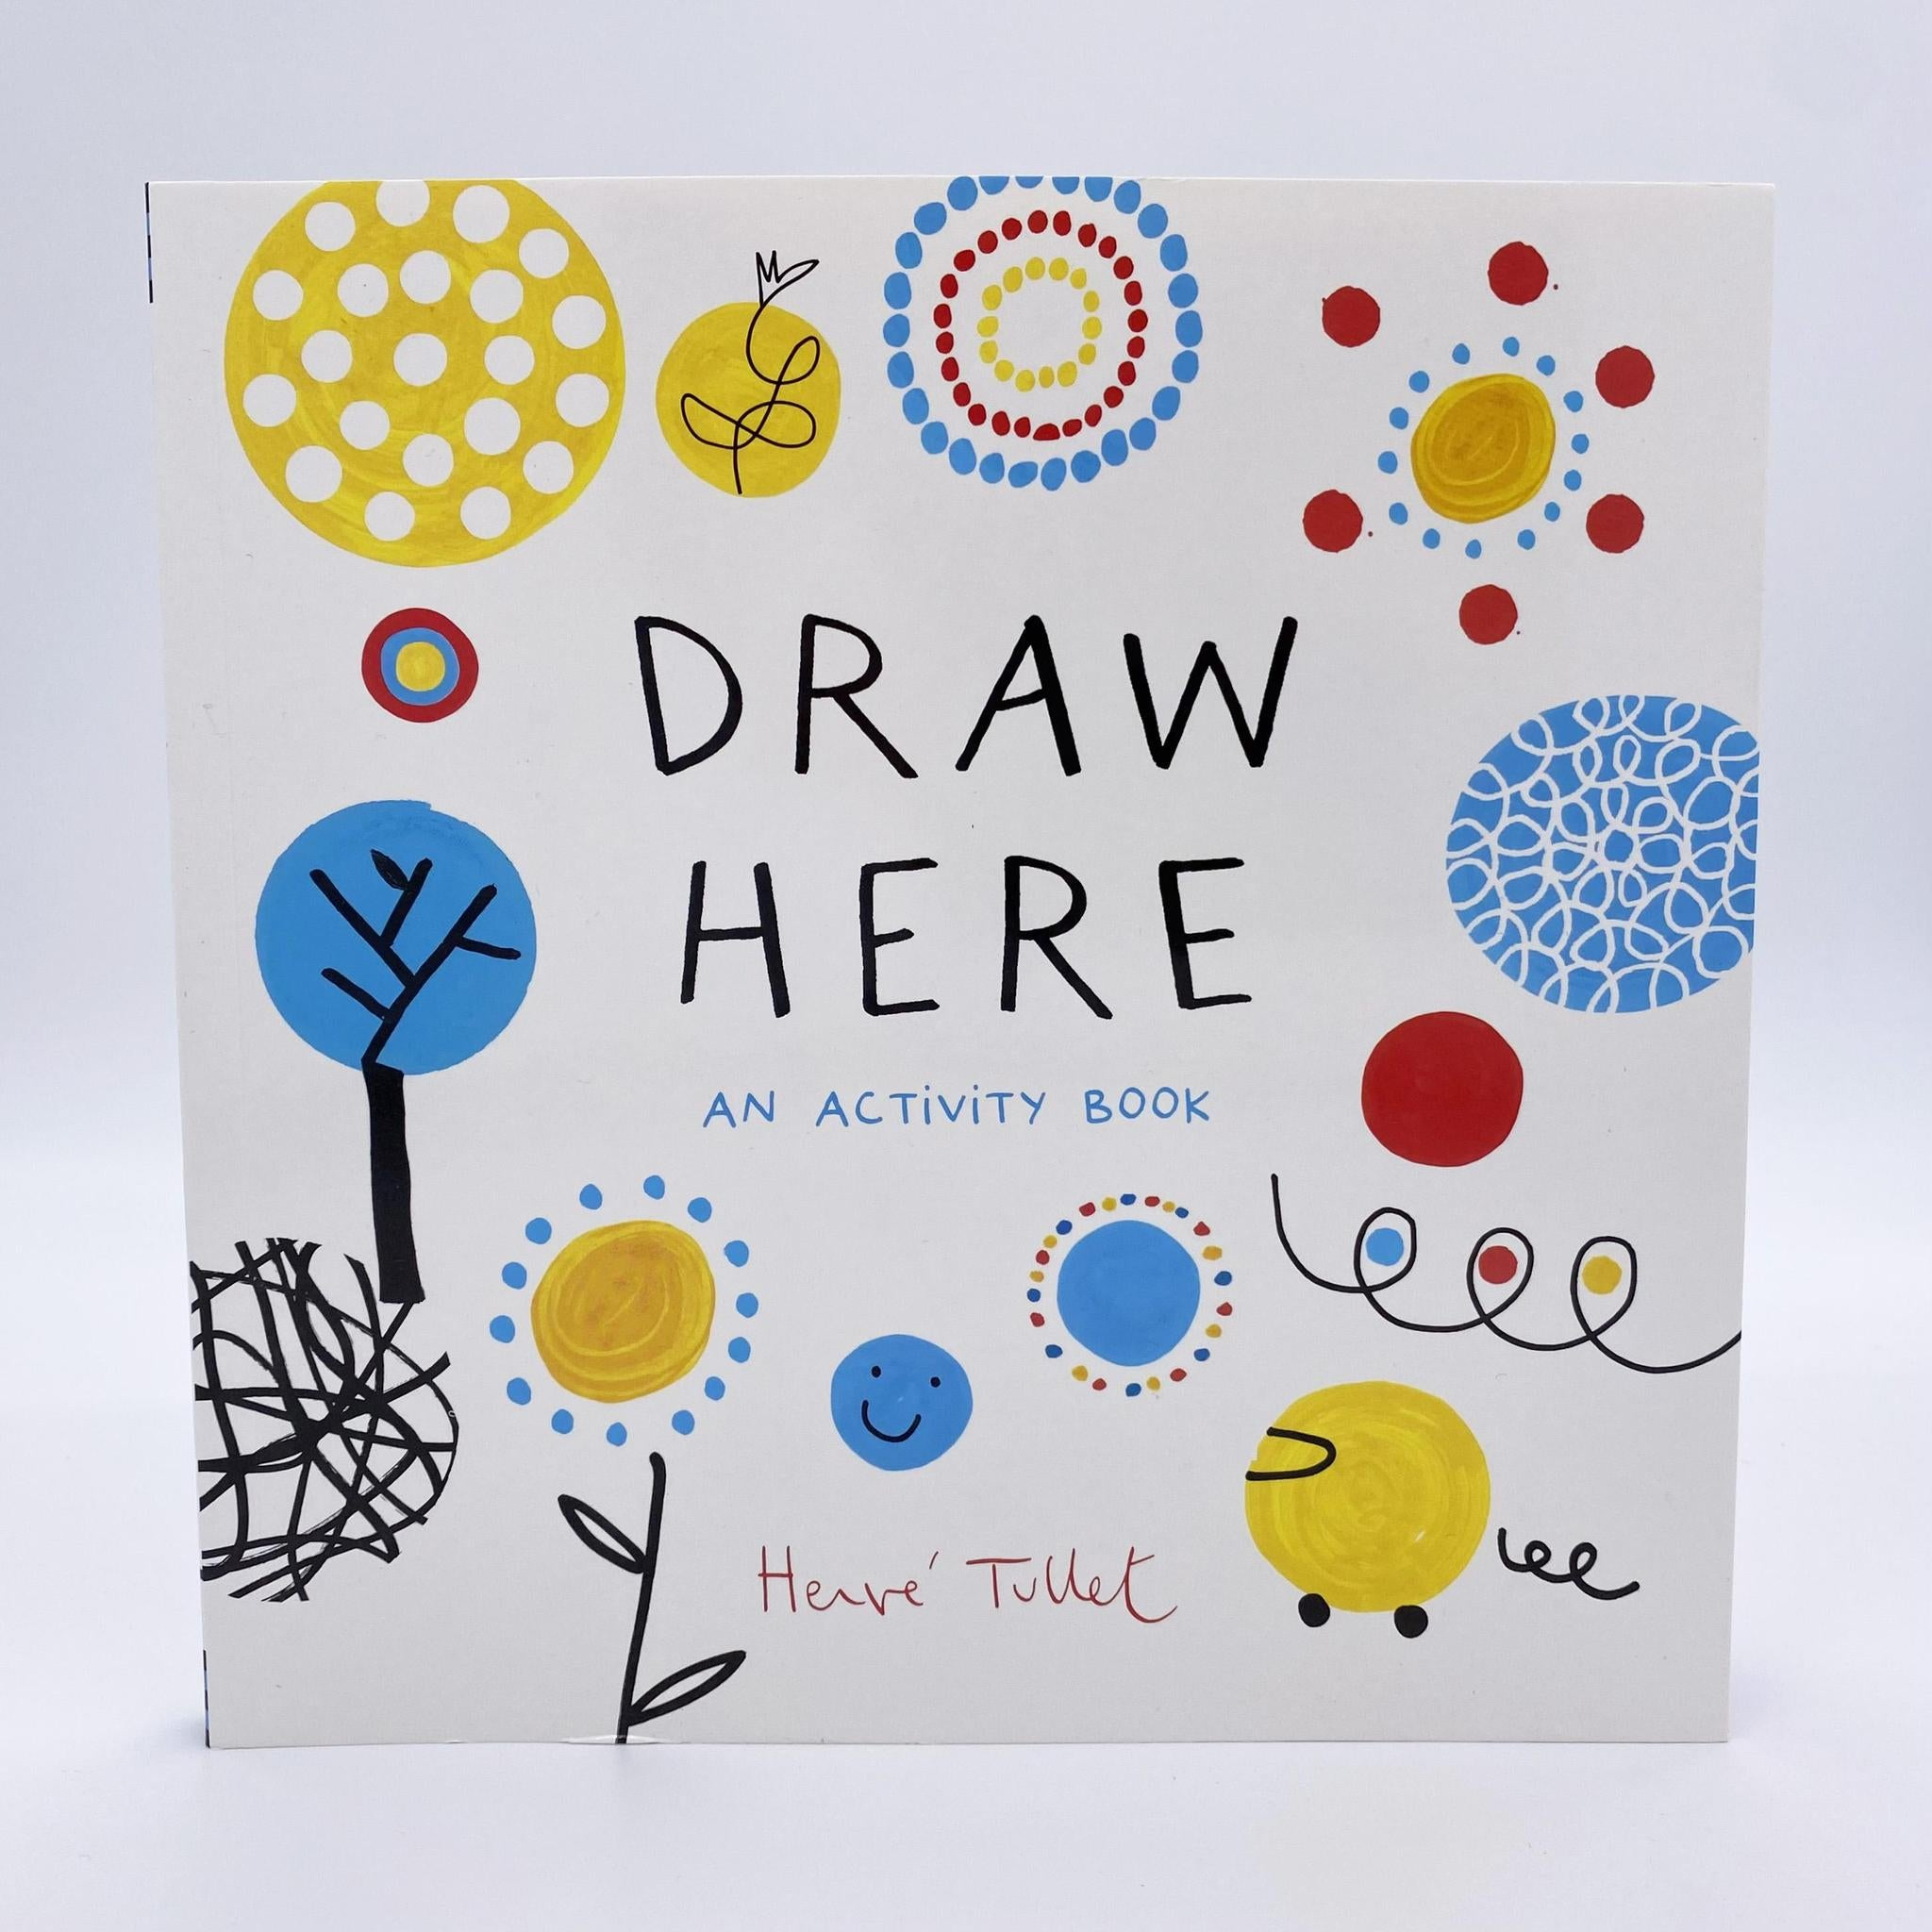 Draw Here: Activity Book